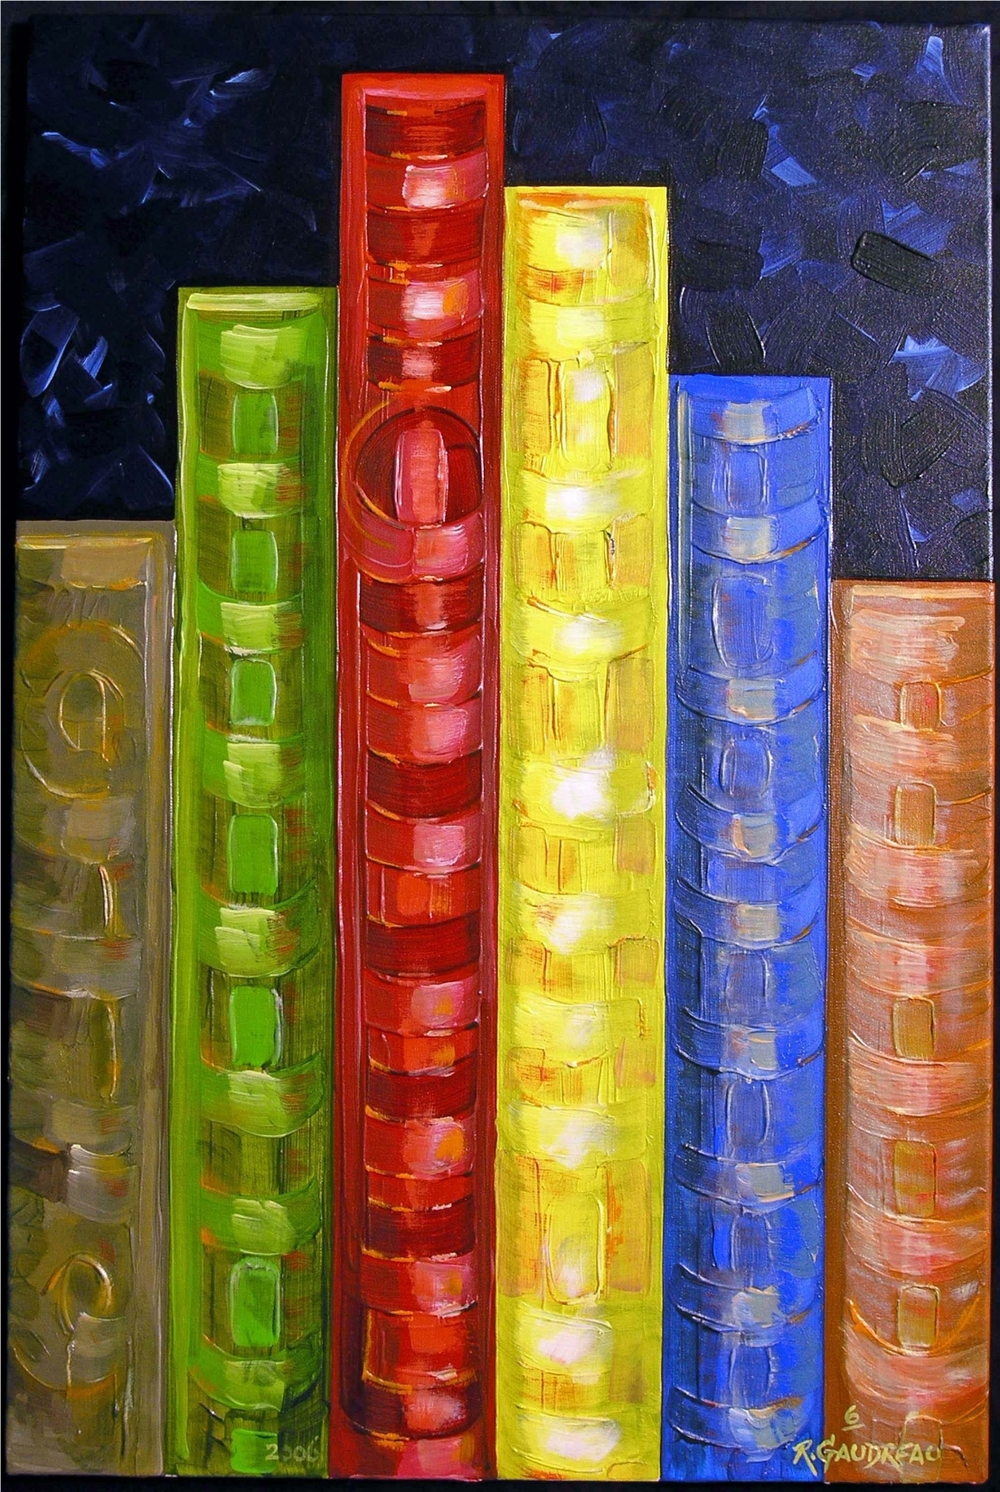 6 Books    2006 oil on canvas 36 x 24 inches